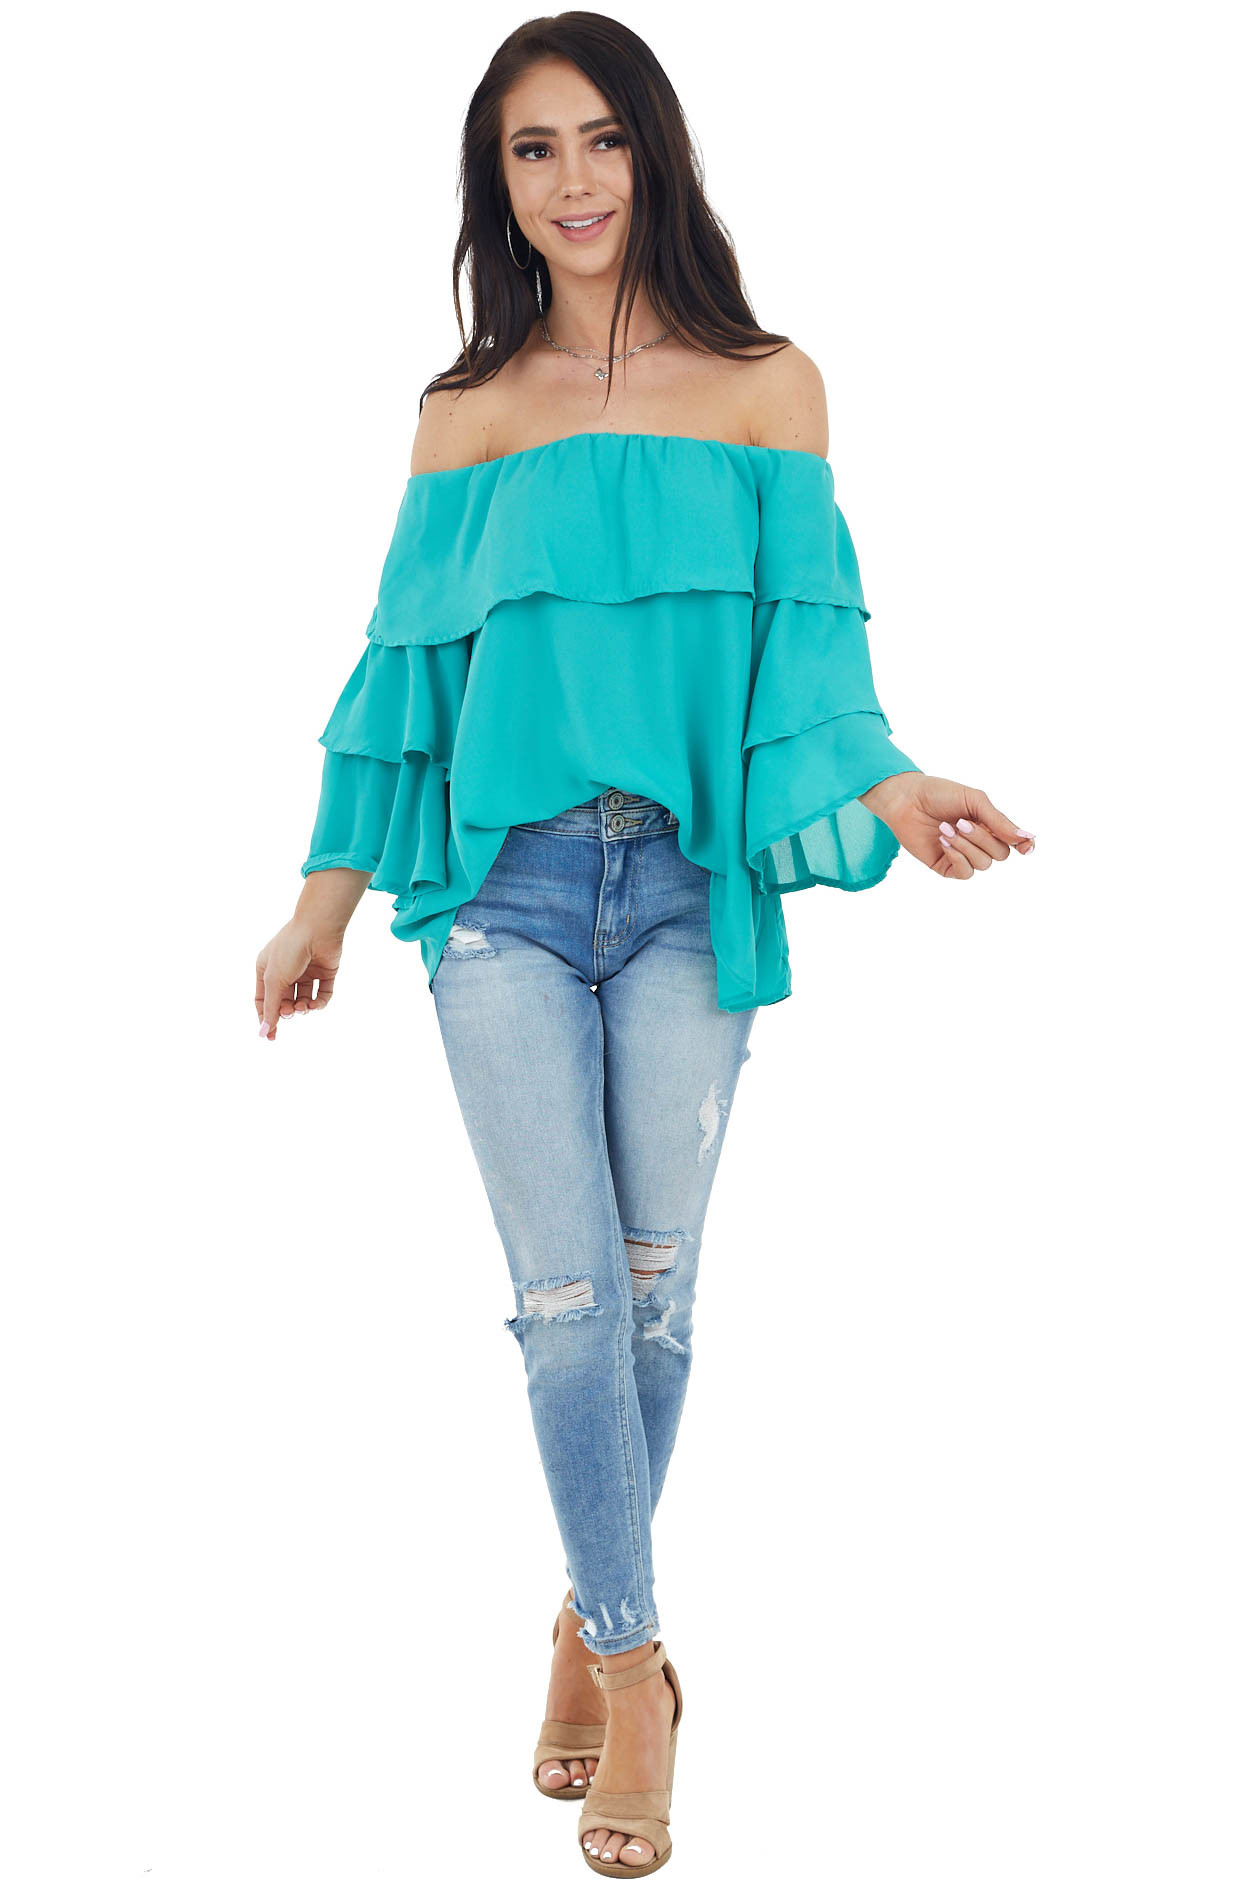 Aqua Off the Shoulder Flowy Top with Ruffled Sleeves